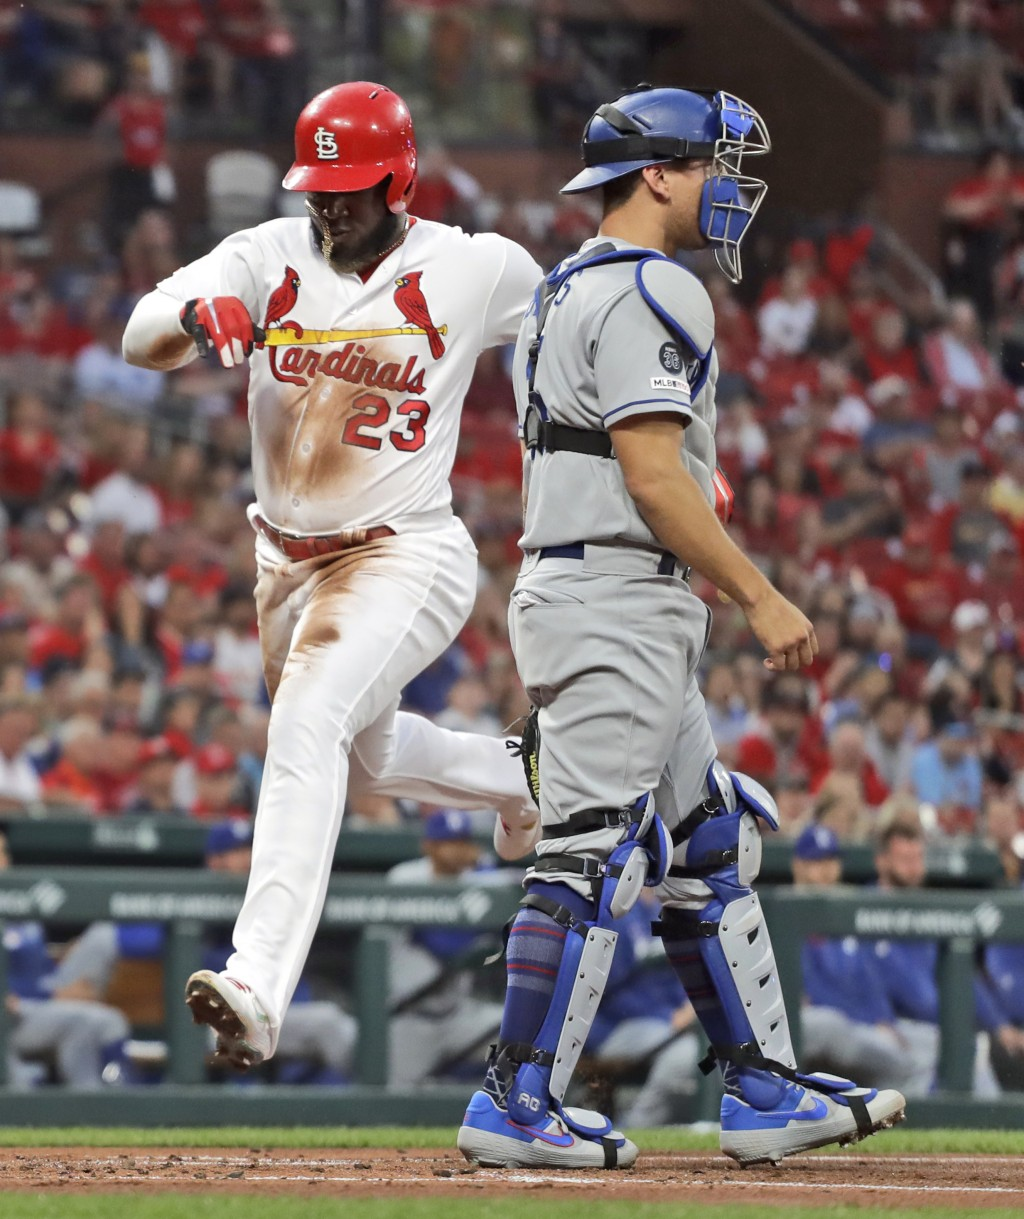 St. Louis Cardinals' Marcell Ozuna (23) scores past Los Angeles Dodgers catcher Austin Barnes during the second inning of a baseball game Wednesday, A